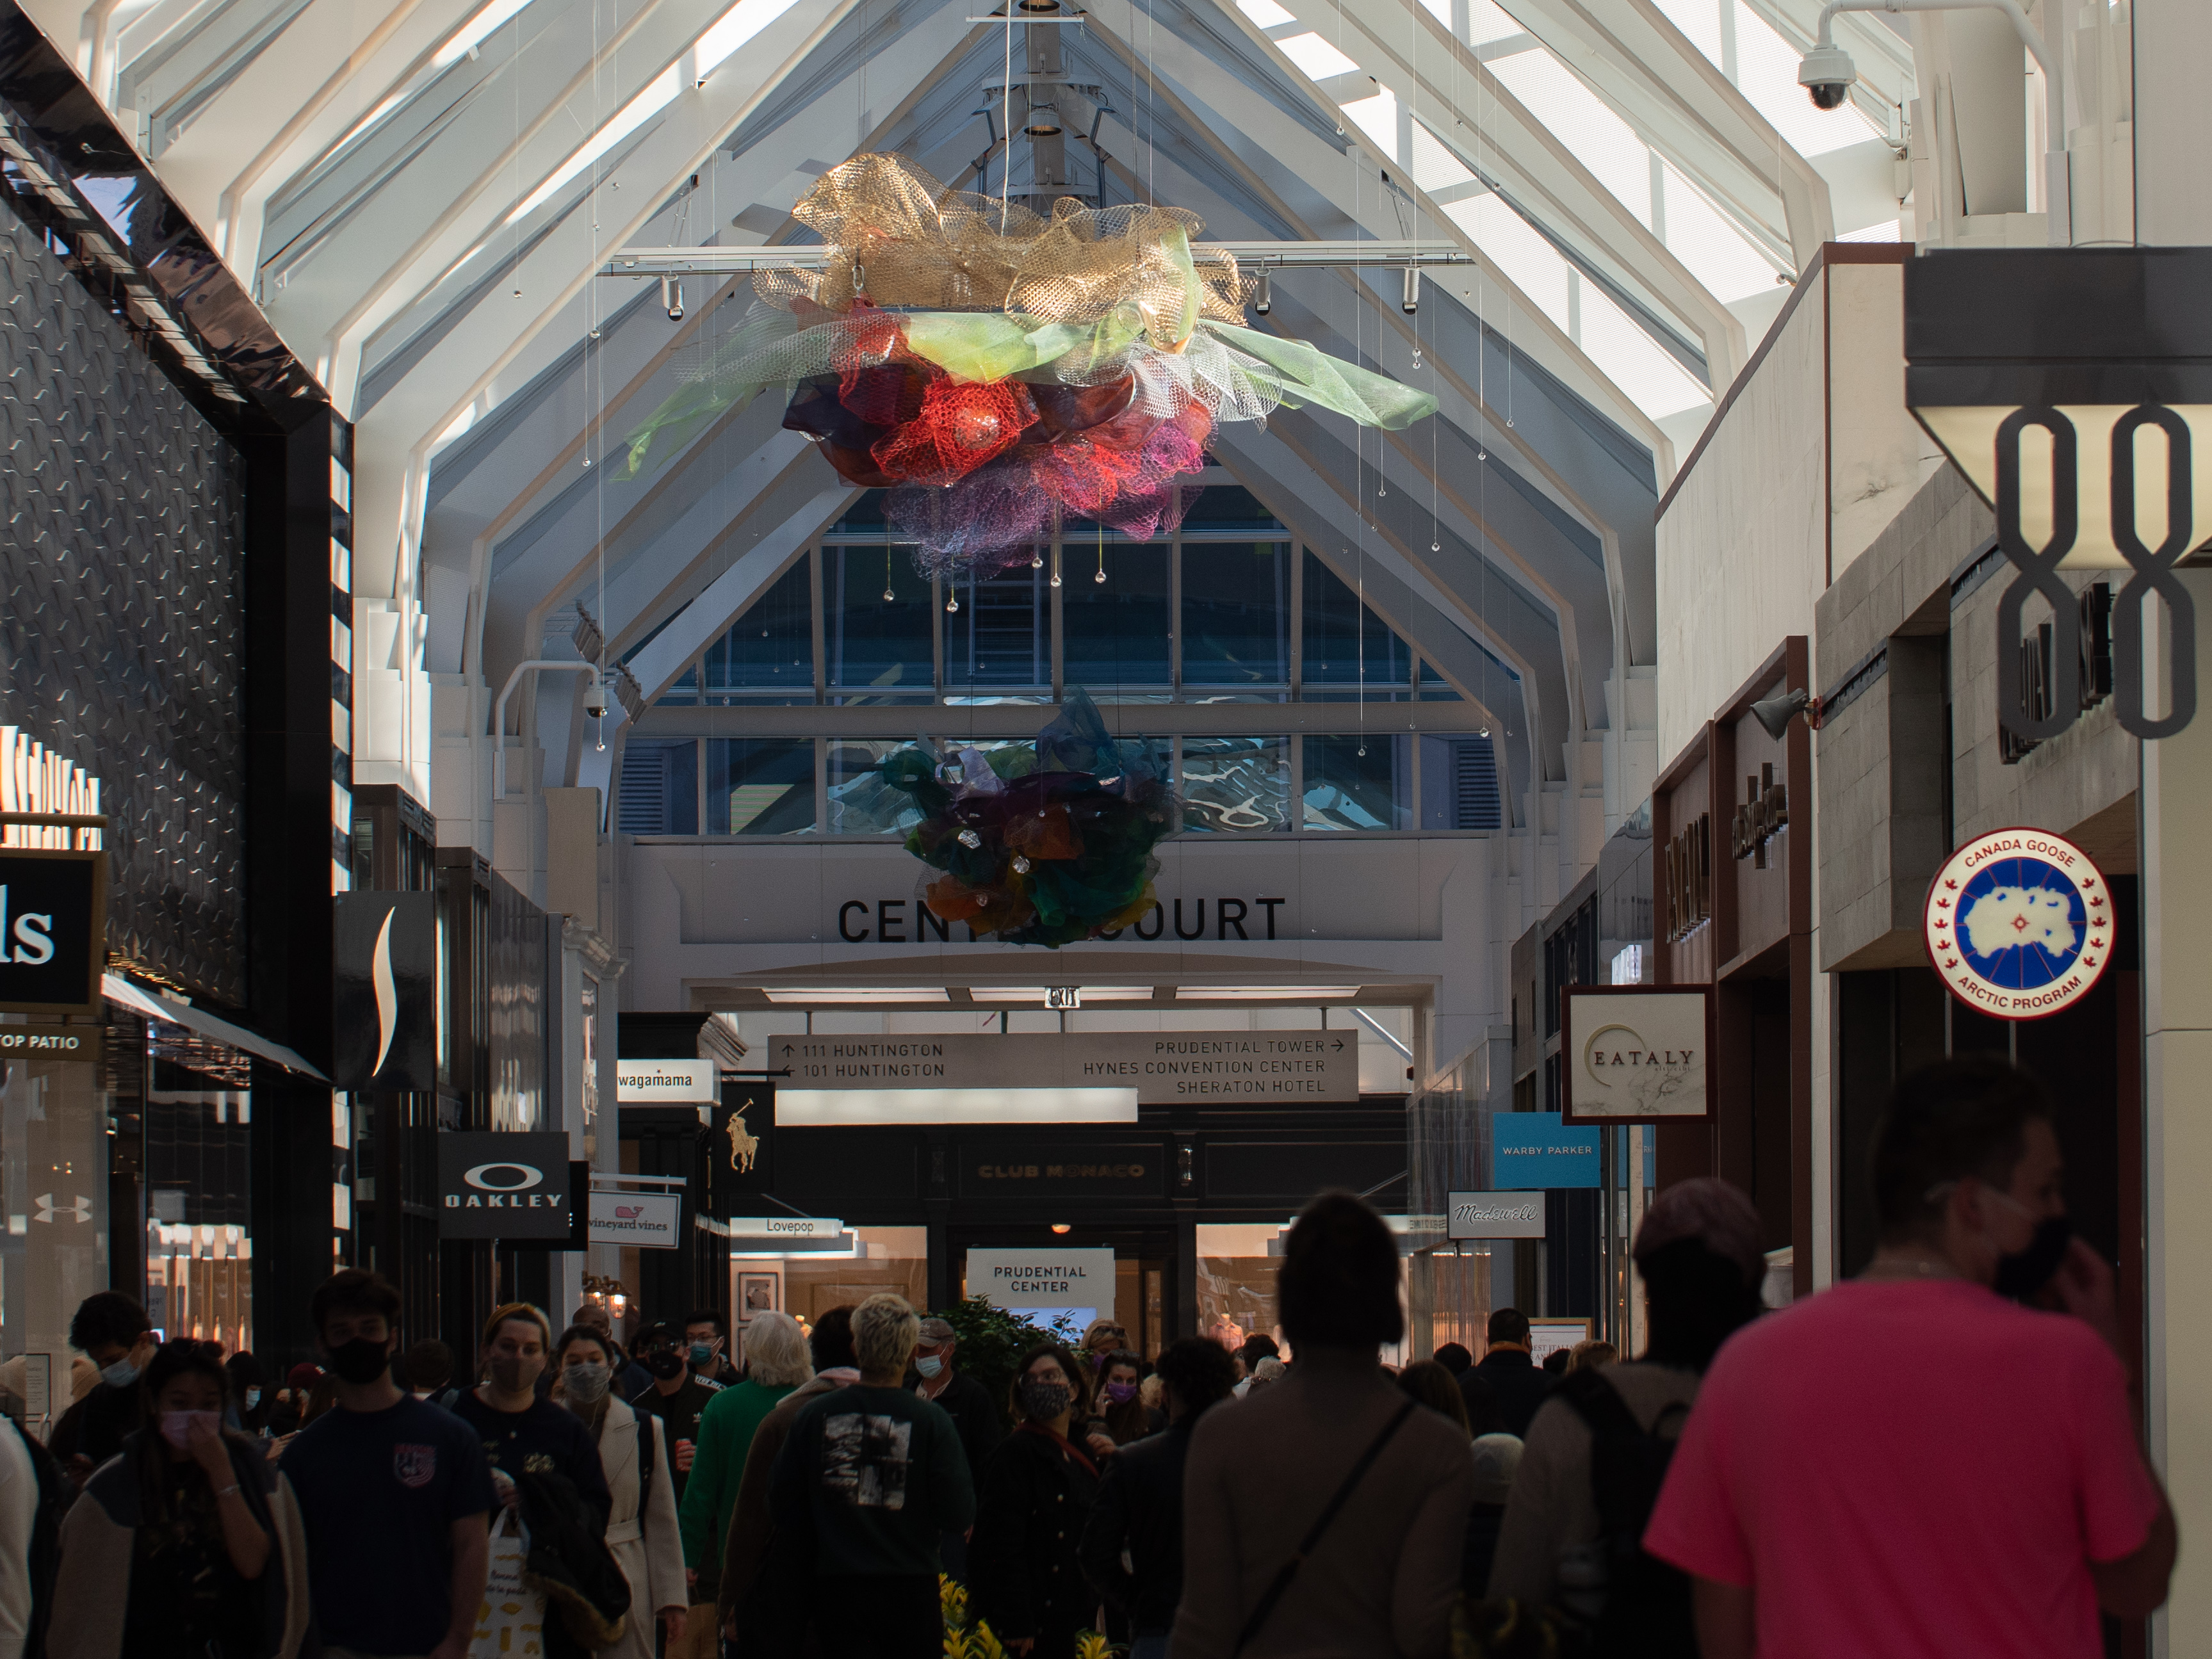 A mesh ball of beige, green, red, purple and a smaller mesh ball beneath of blue, purple, orange, green, and yellow hangs above shoppers and stores in the Prudential Center mall.